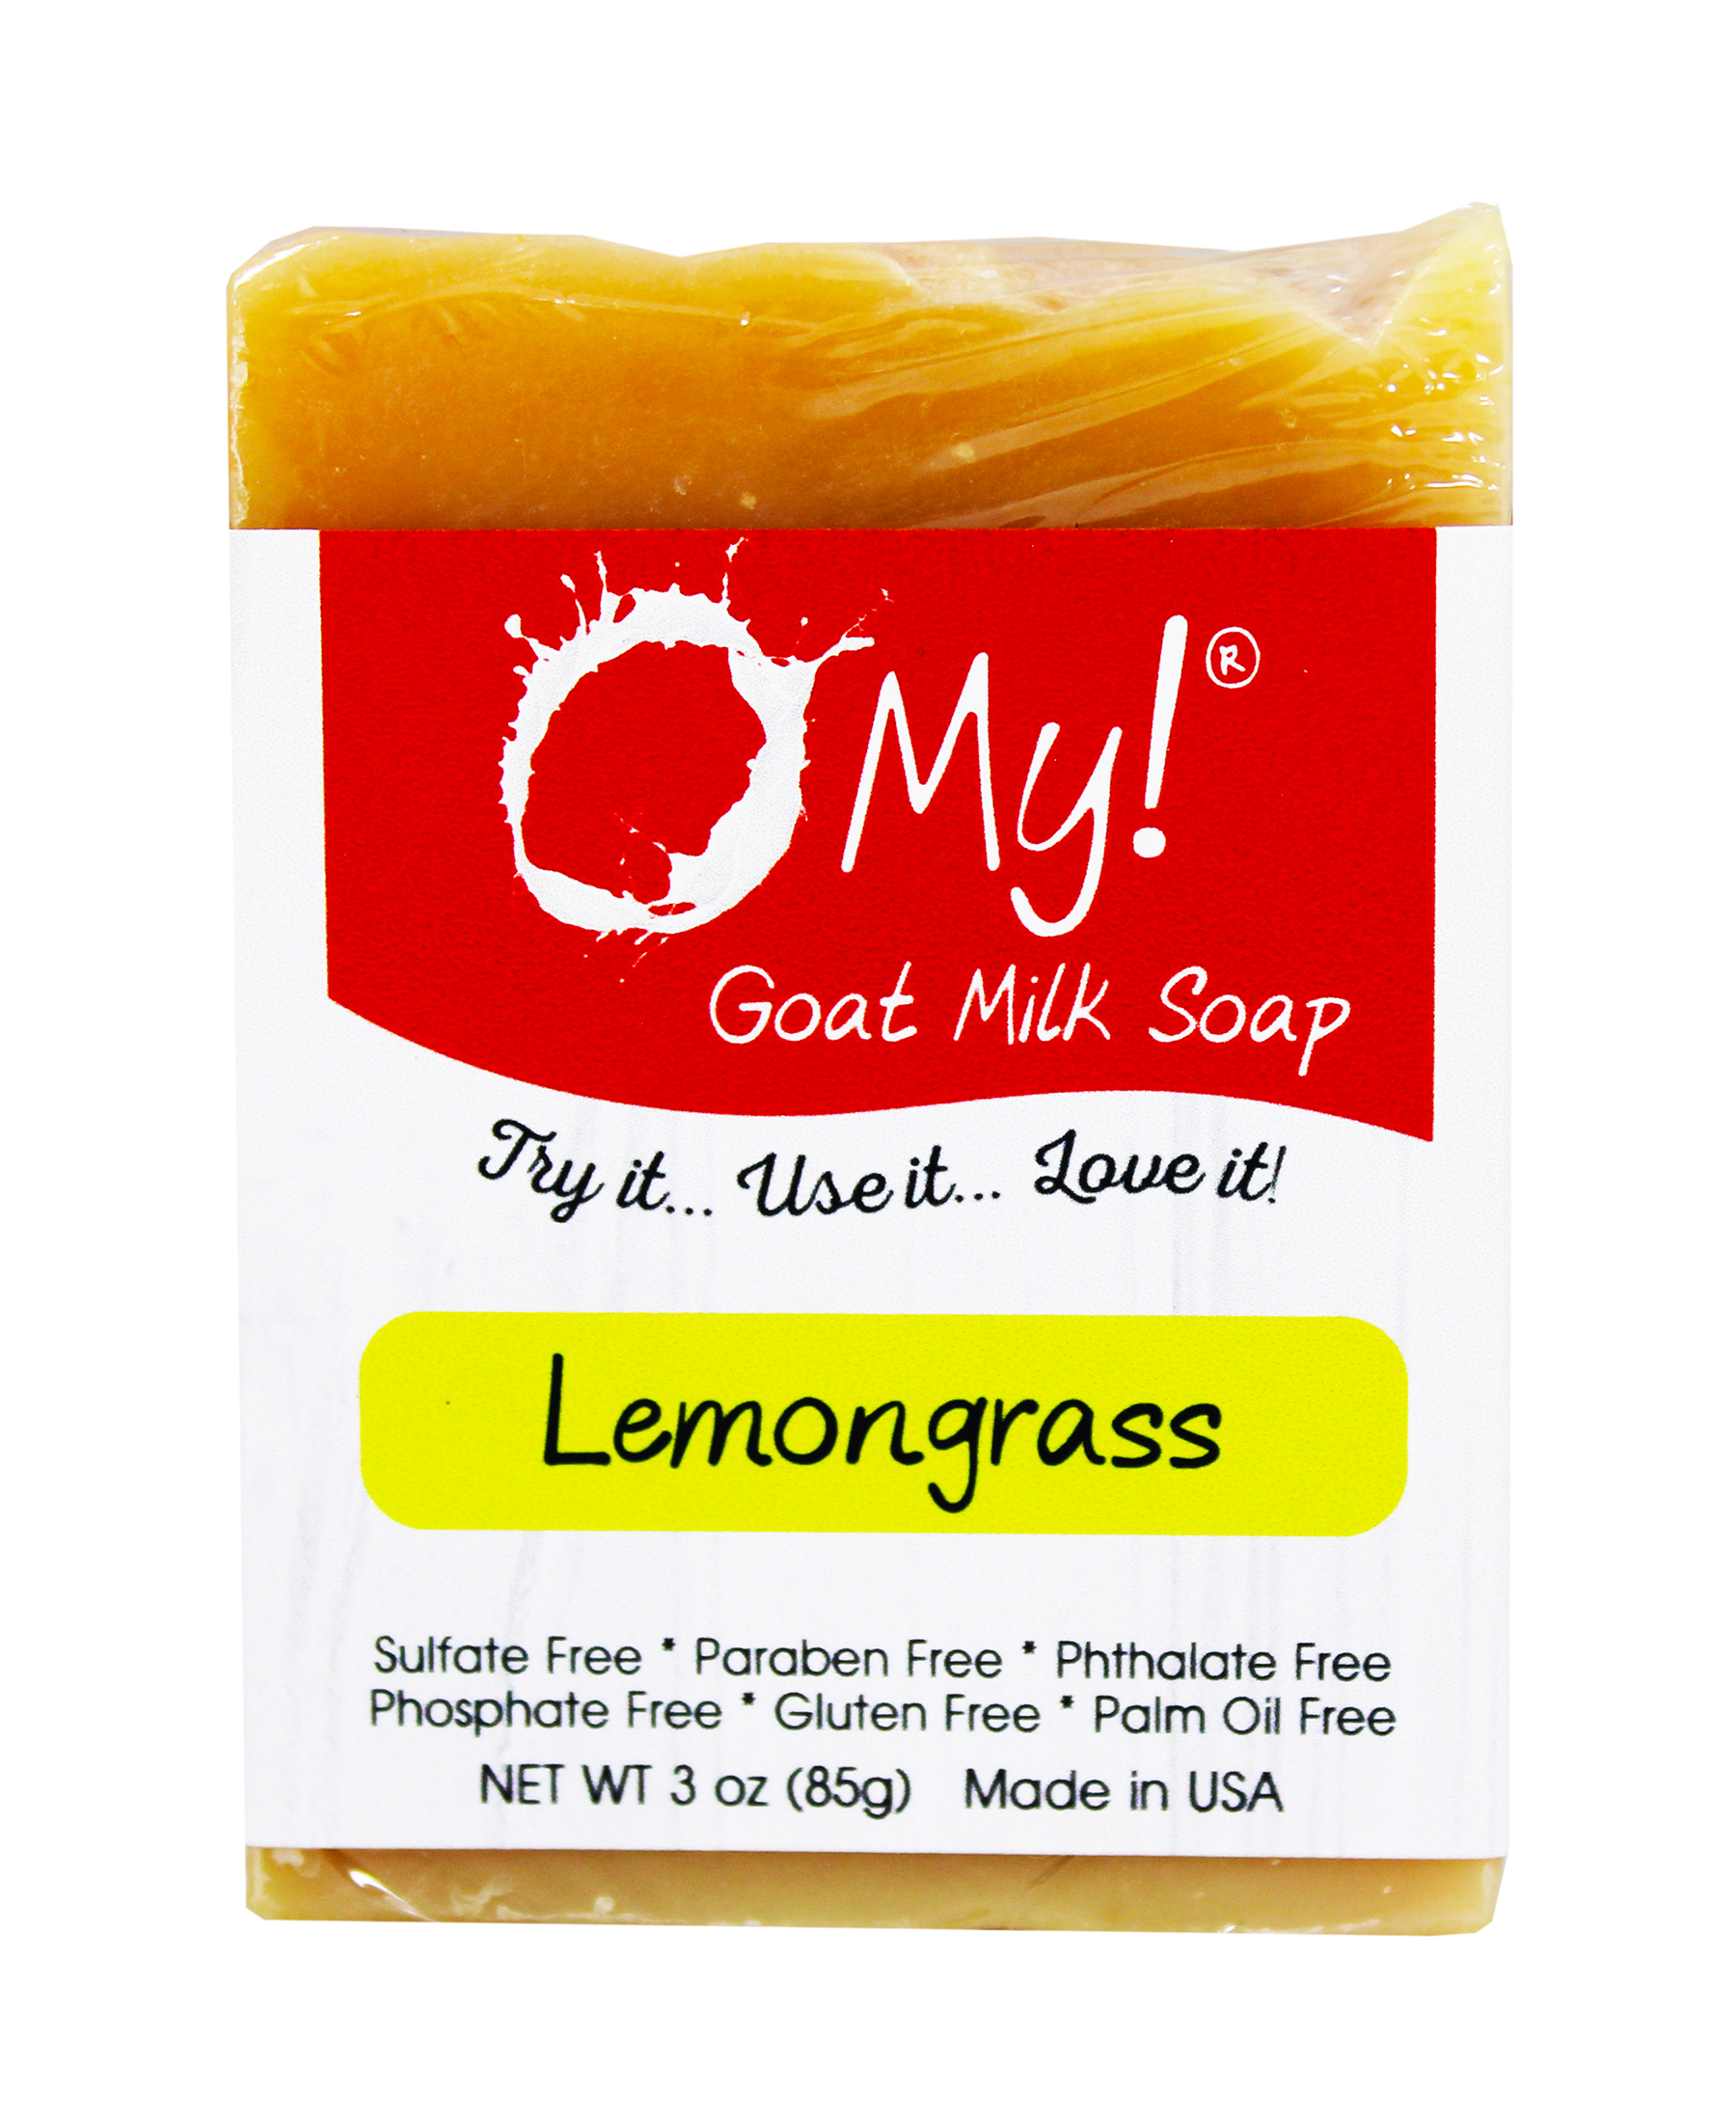 O My! Goat Milk Soap 3oz Bar - Lemongrass | Made with Farm-Fresh Goat Milk | Moisturizes dry skin | Gently Exfoliates | Paraben Free | Leaping Bunny Certified | Made in USA